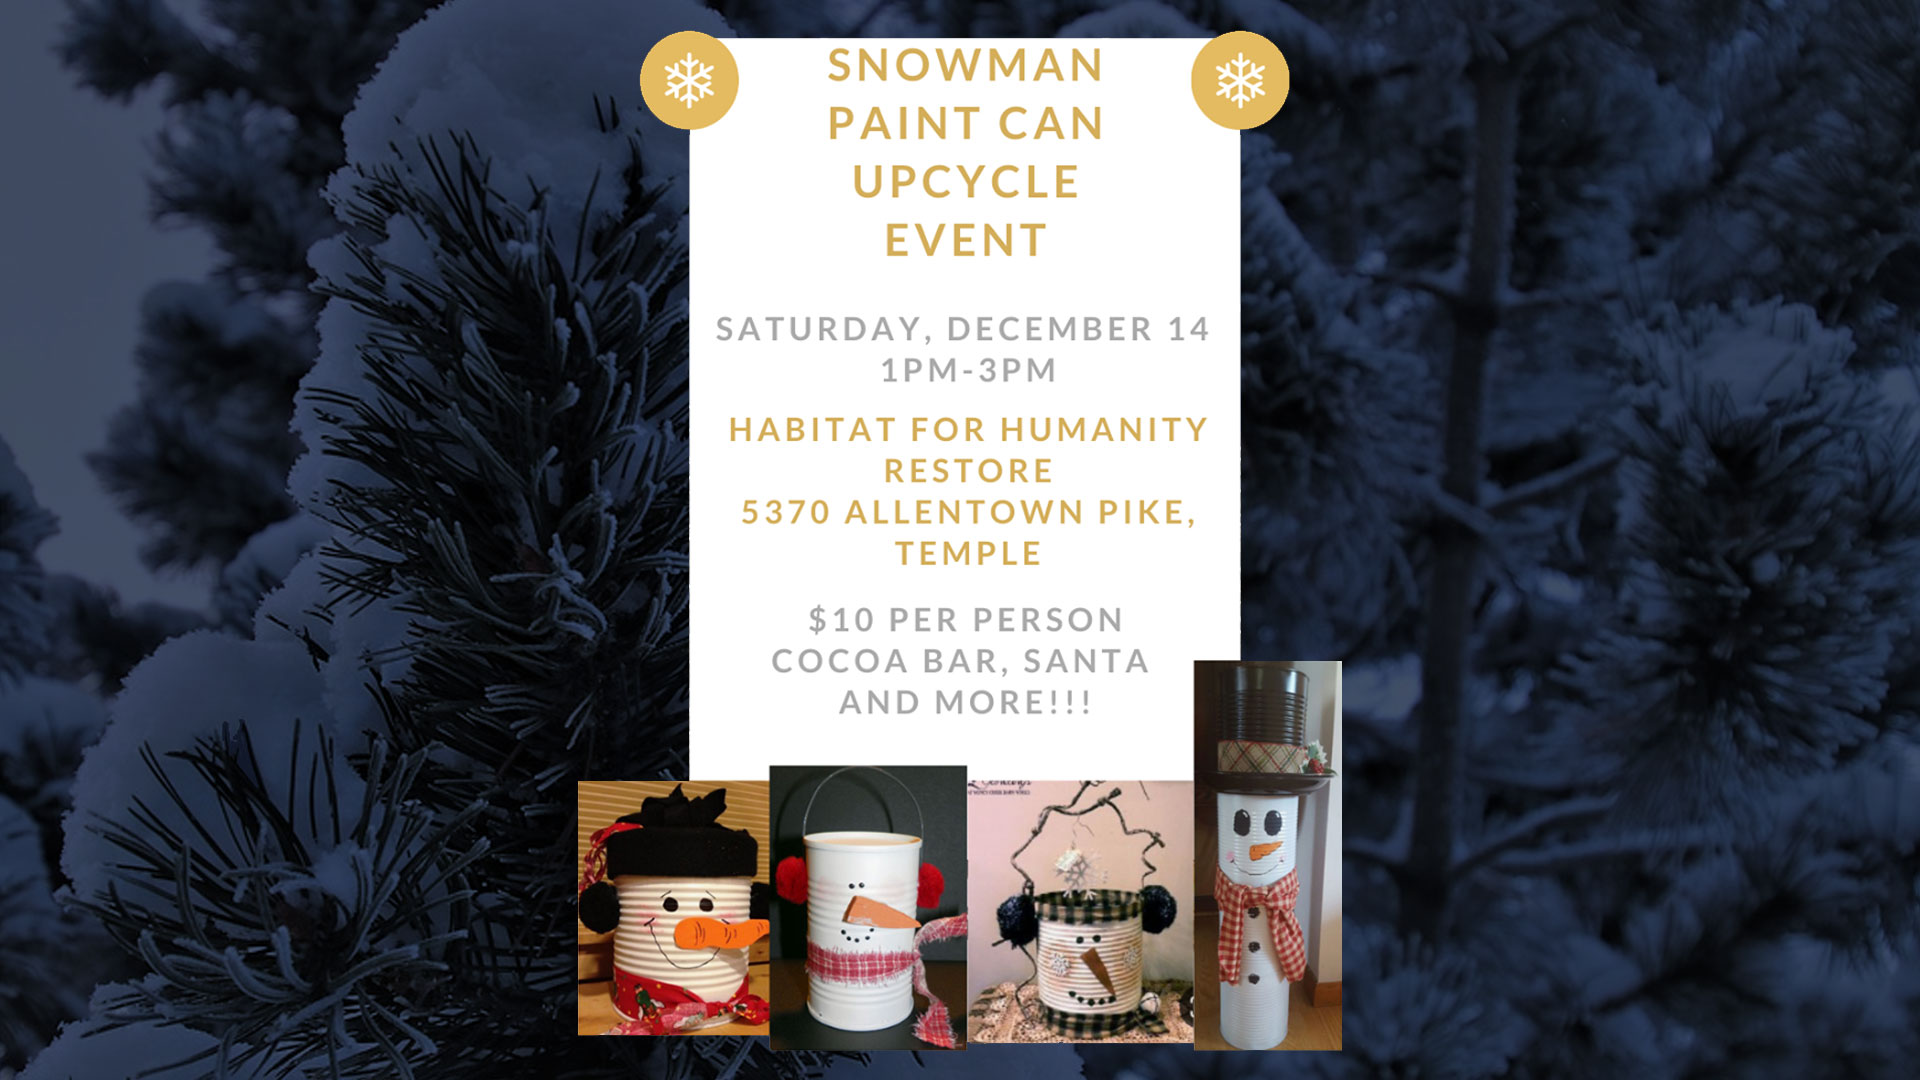 Snowman Paint Can Upcycle Event